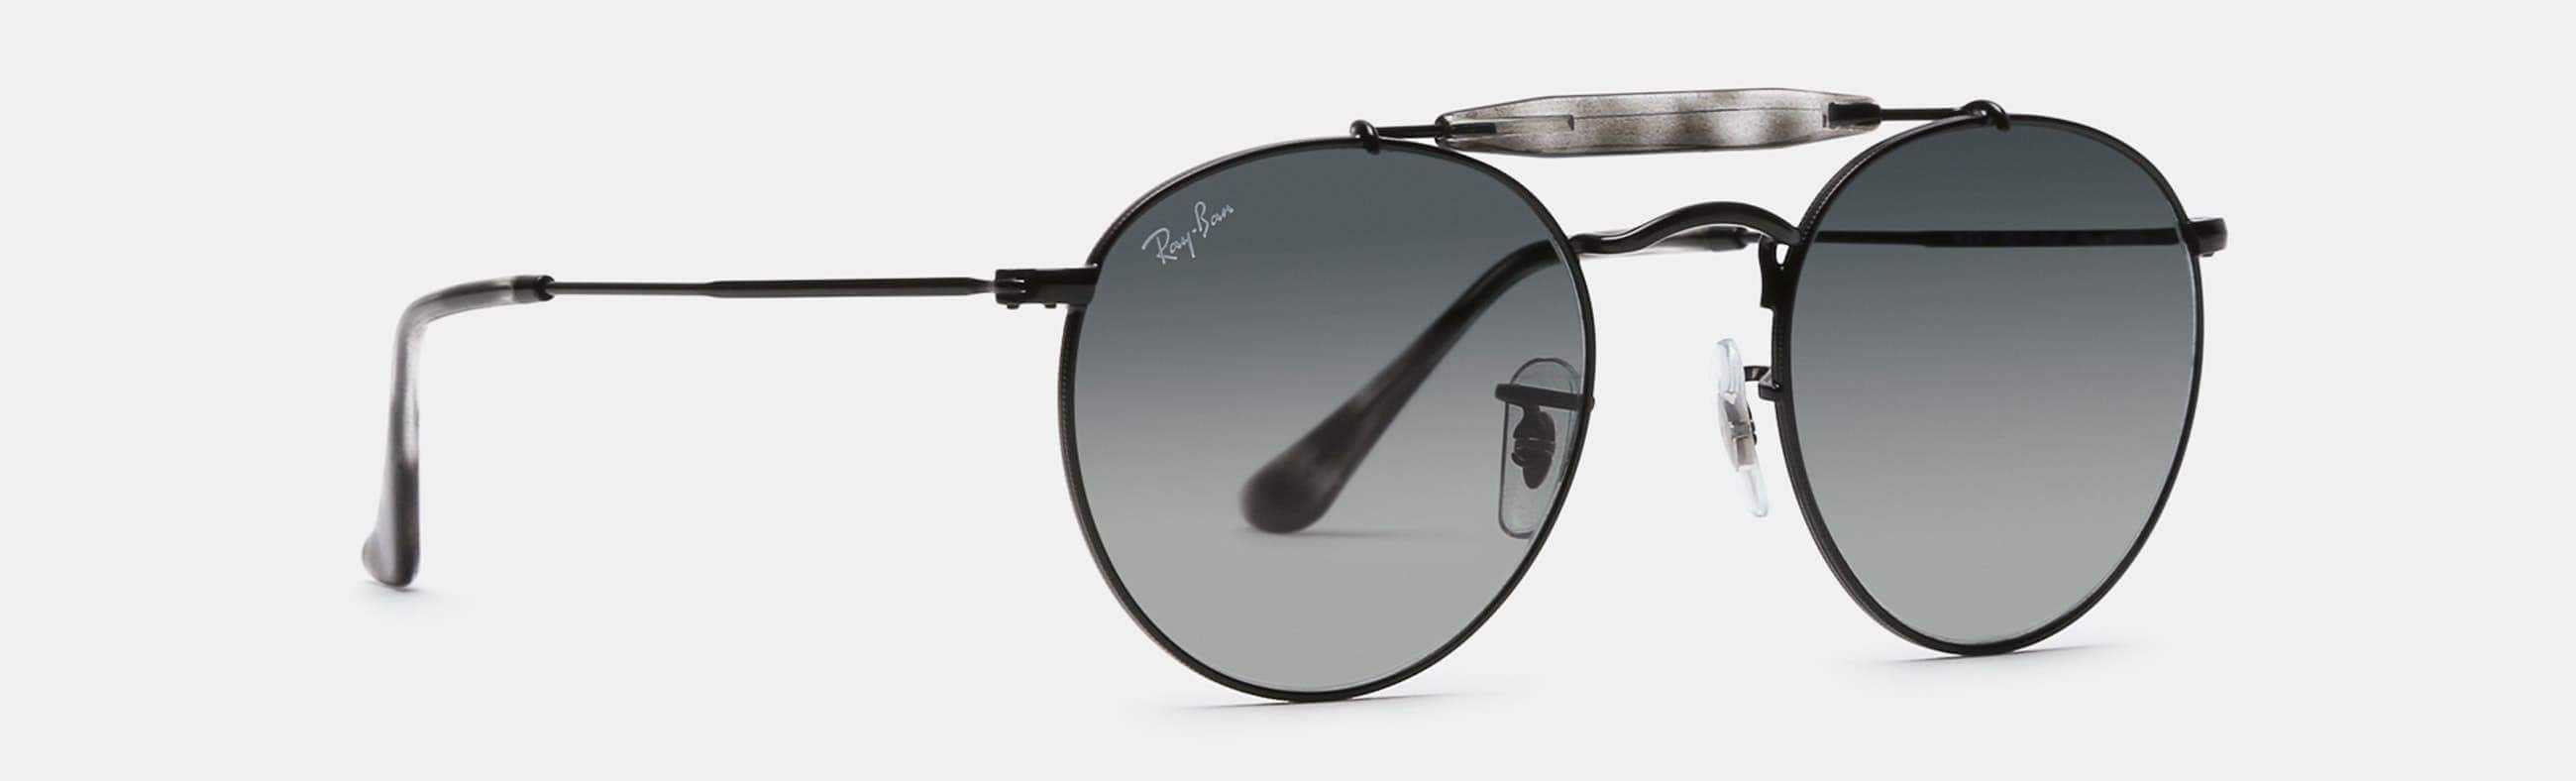 Ray-Ban RB3747 Sunglasses $59.99 + Free Shipping